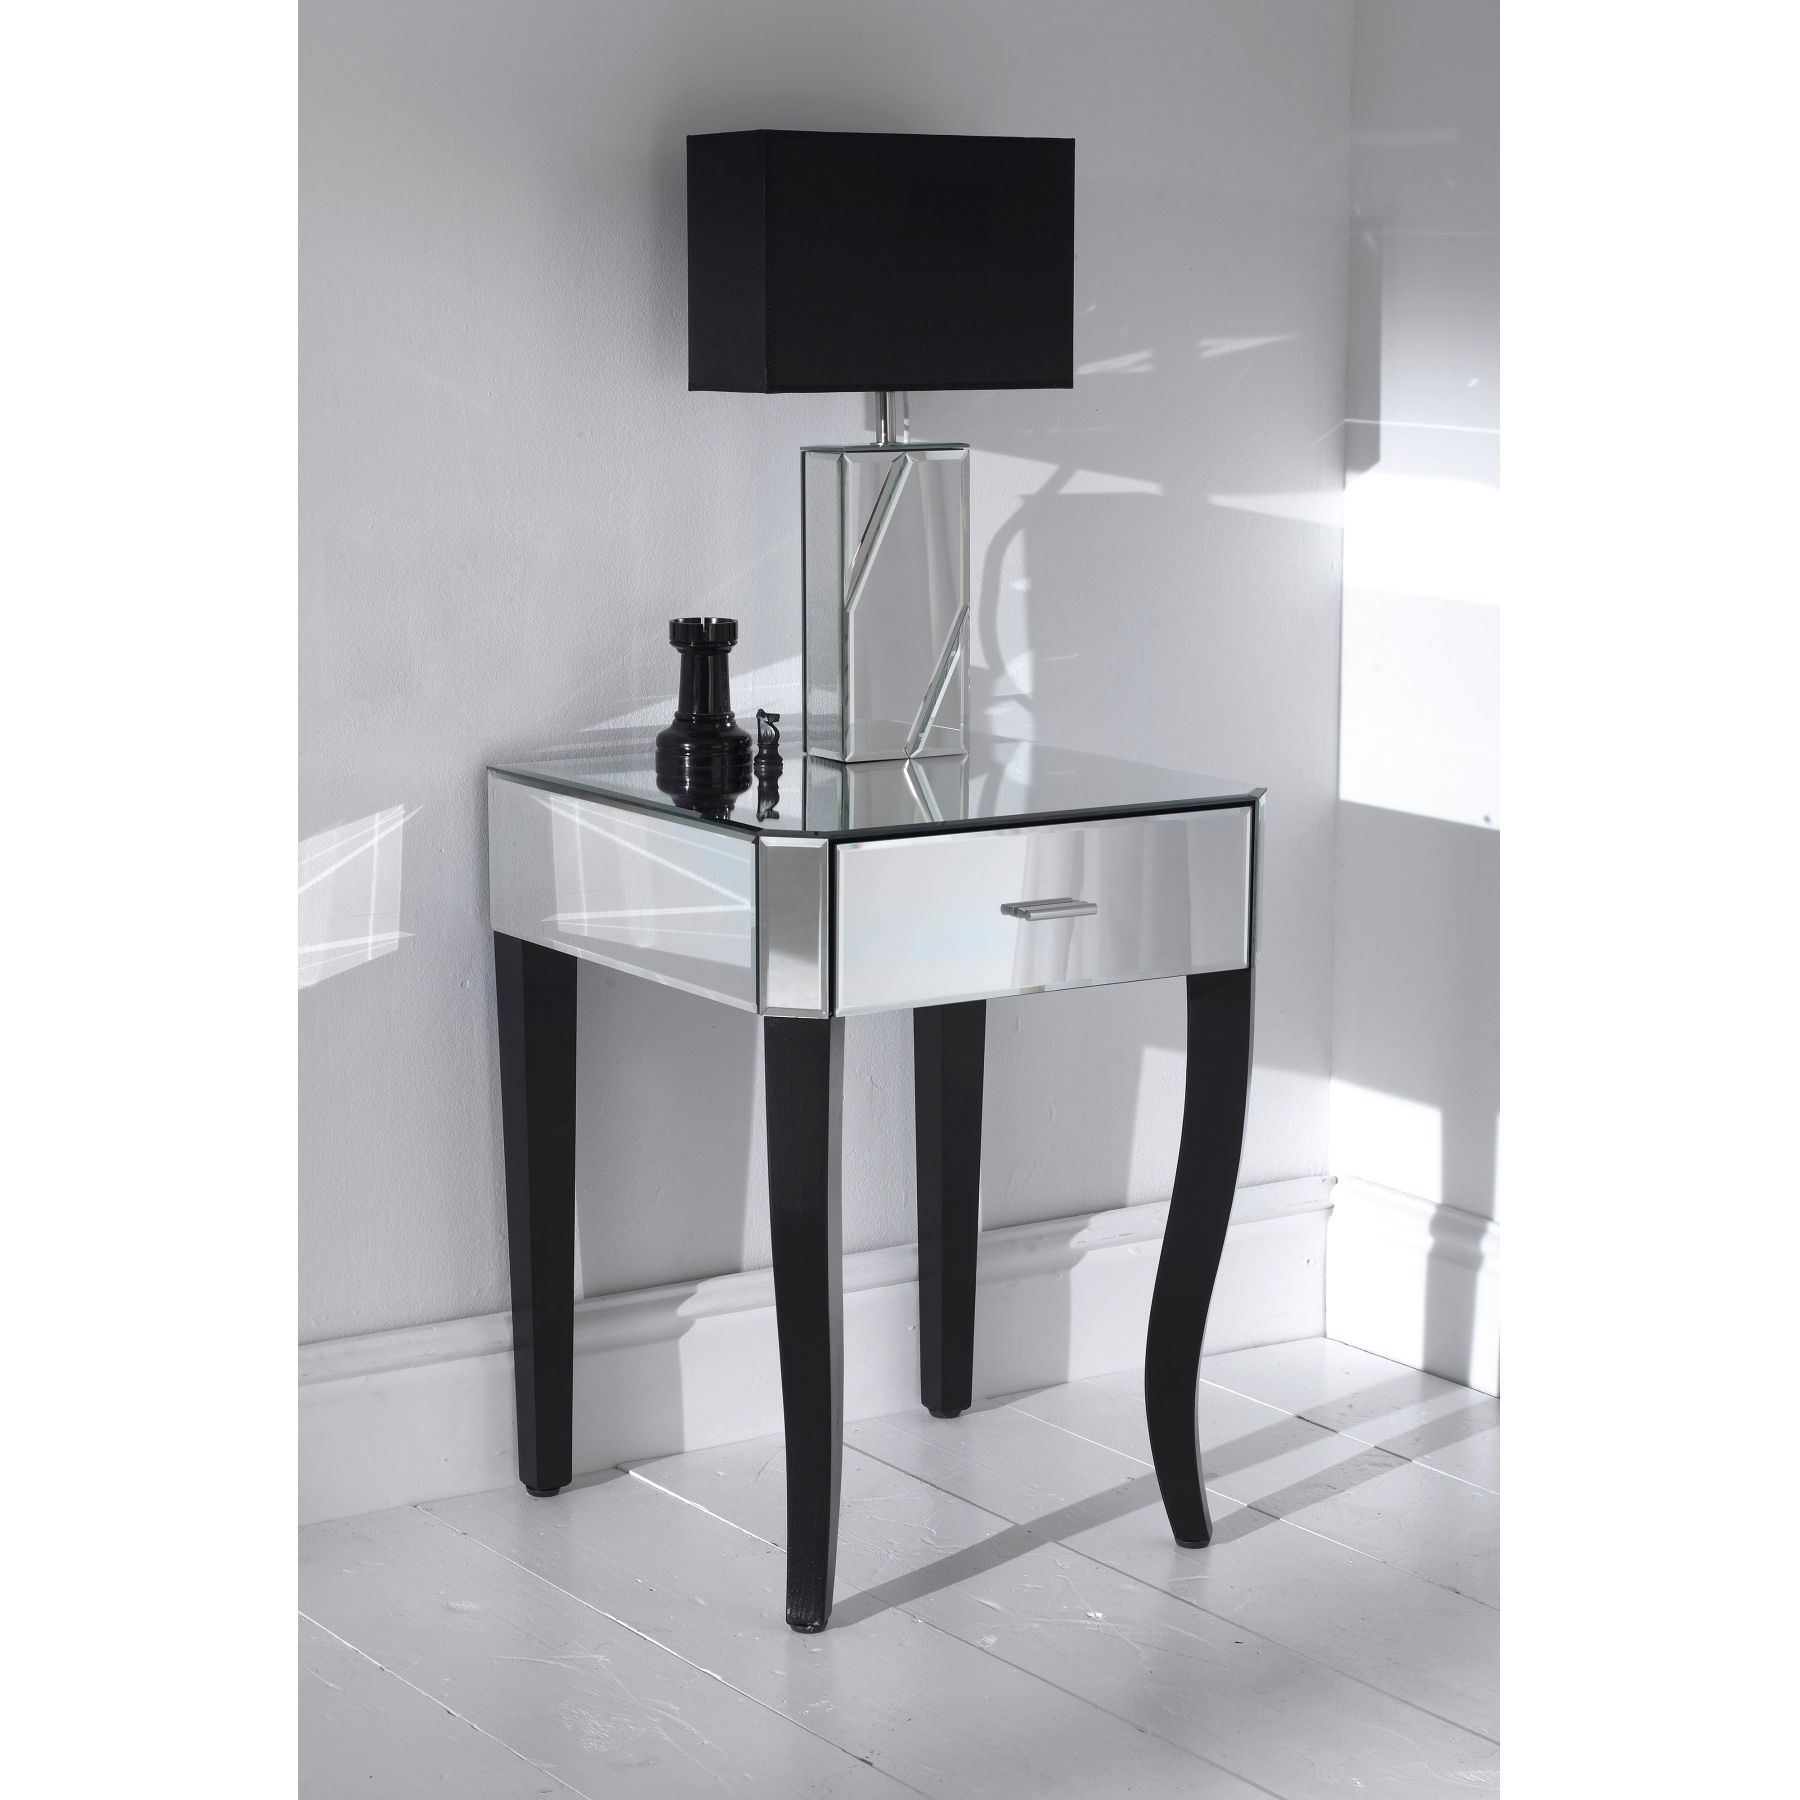 mirror furniture french furniture bedroom furniture table furniture